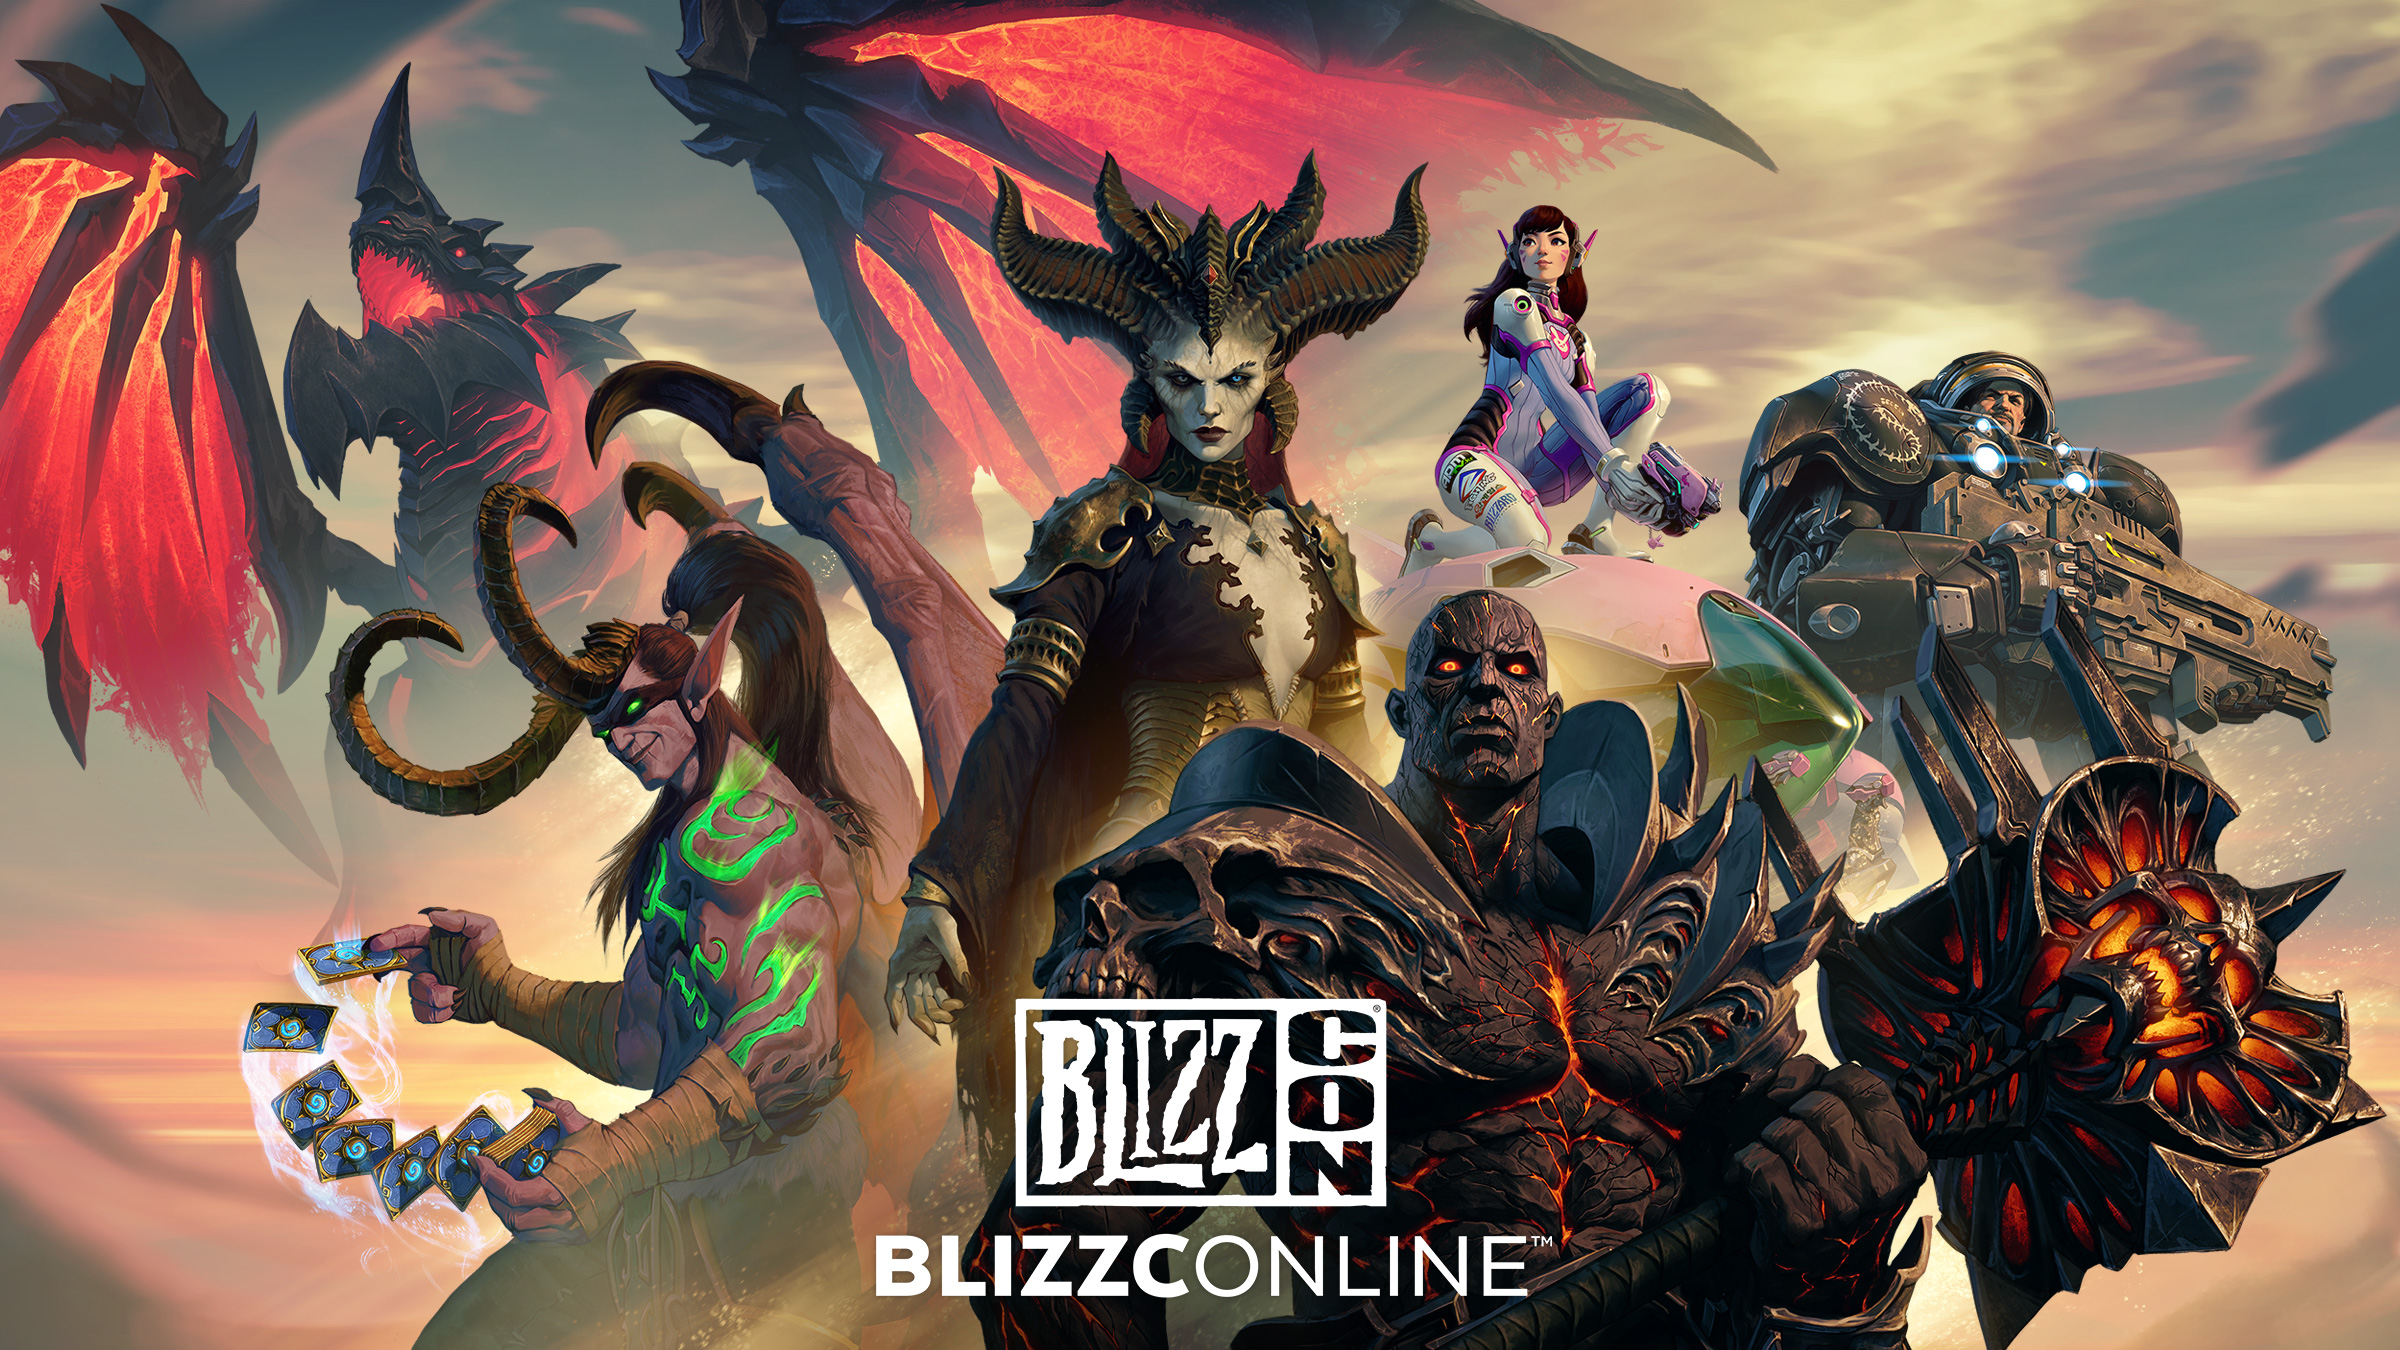 Tune in for World of Warcraft at BlizzConline February 19-20